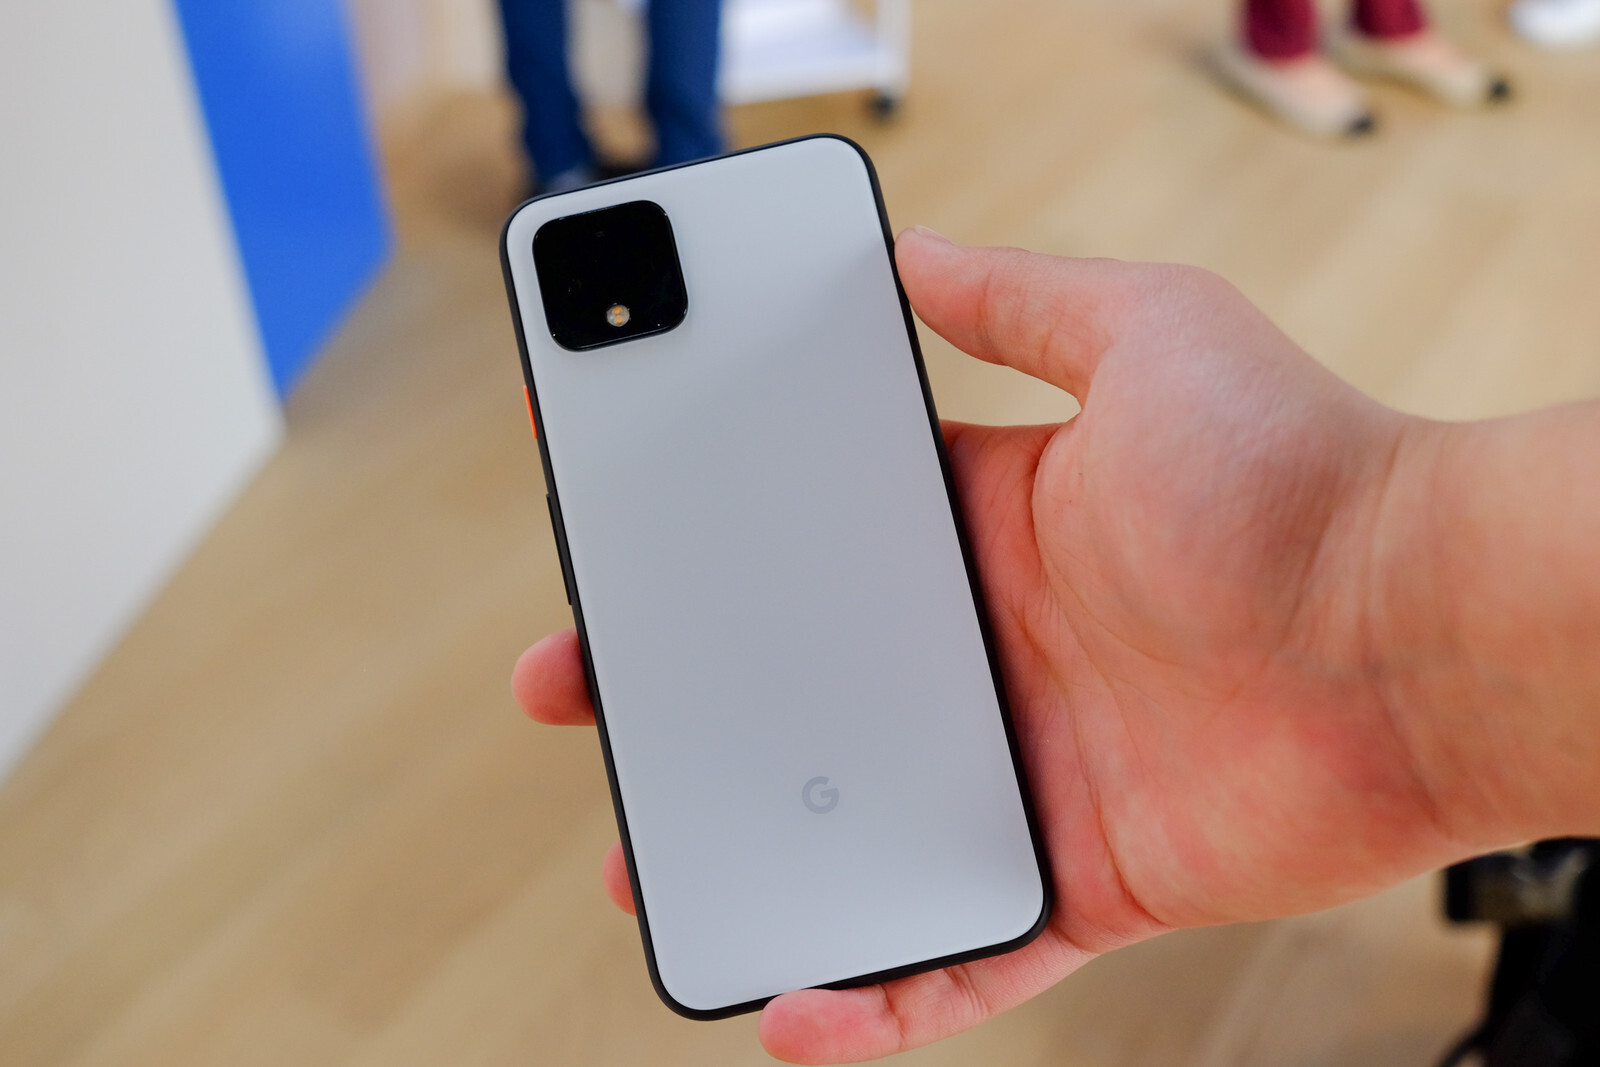 The official prototype of Google Pixel 5 XL leaked online